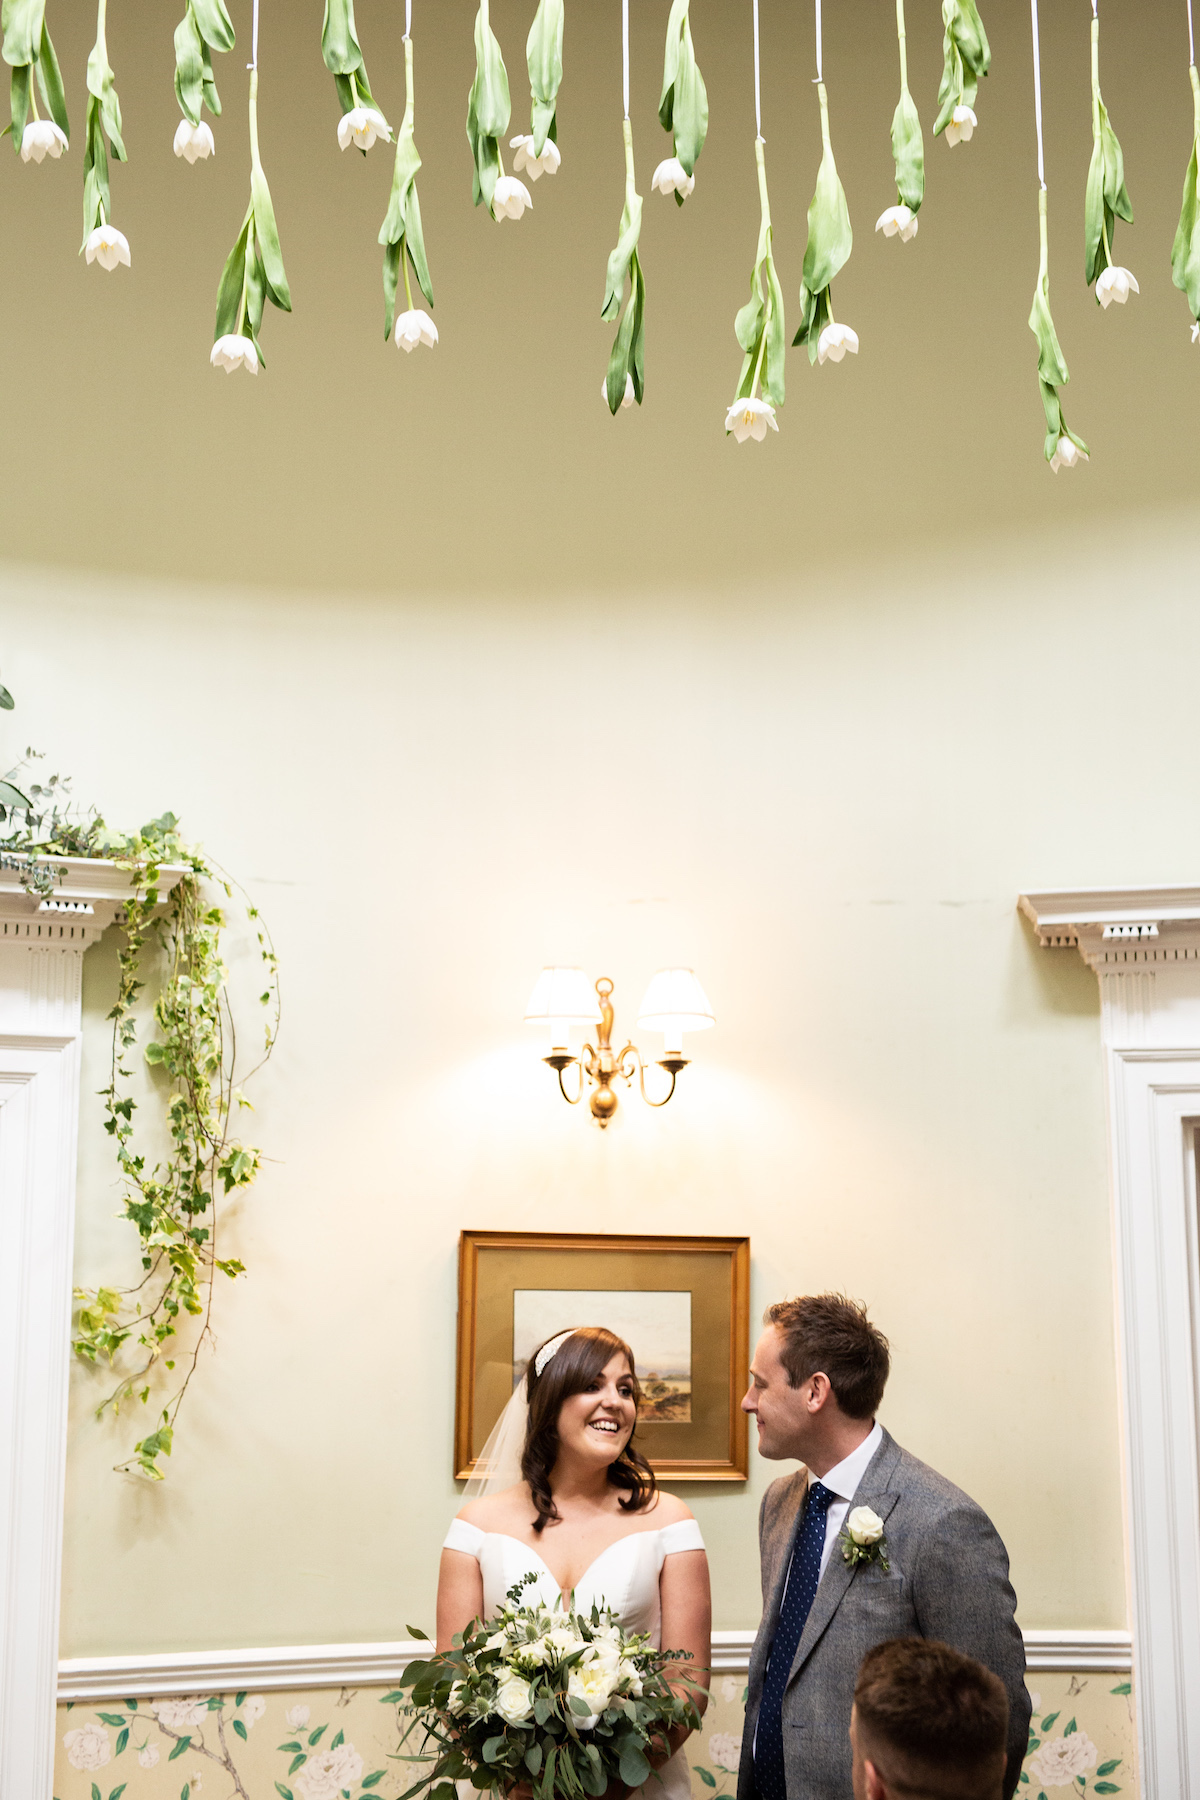 Middleton Lodge Wedding Photographer, Wedding flowers middleton lodge, wedding ceremony